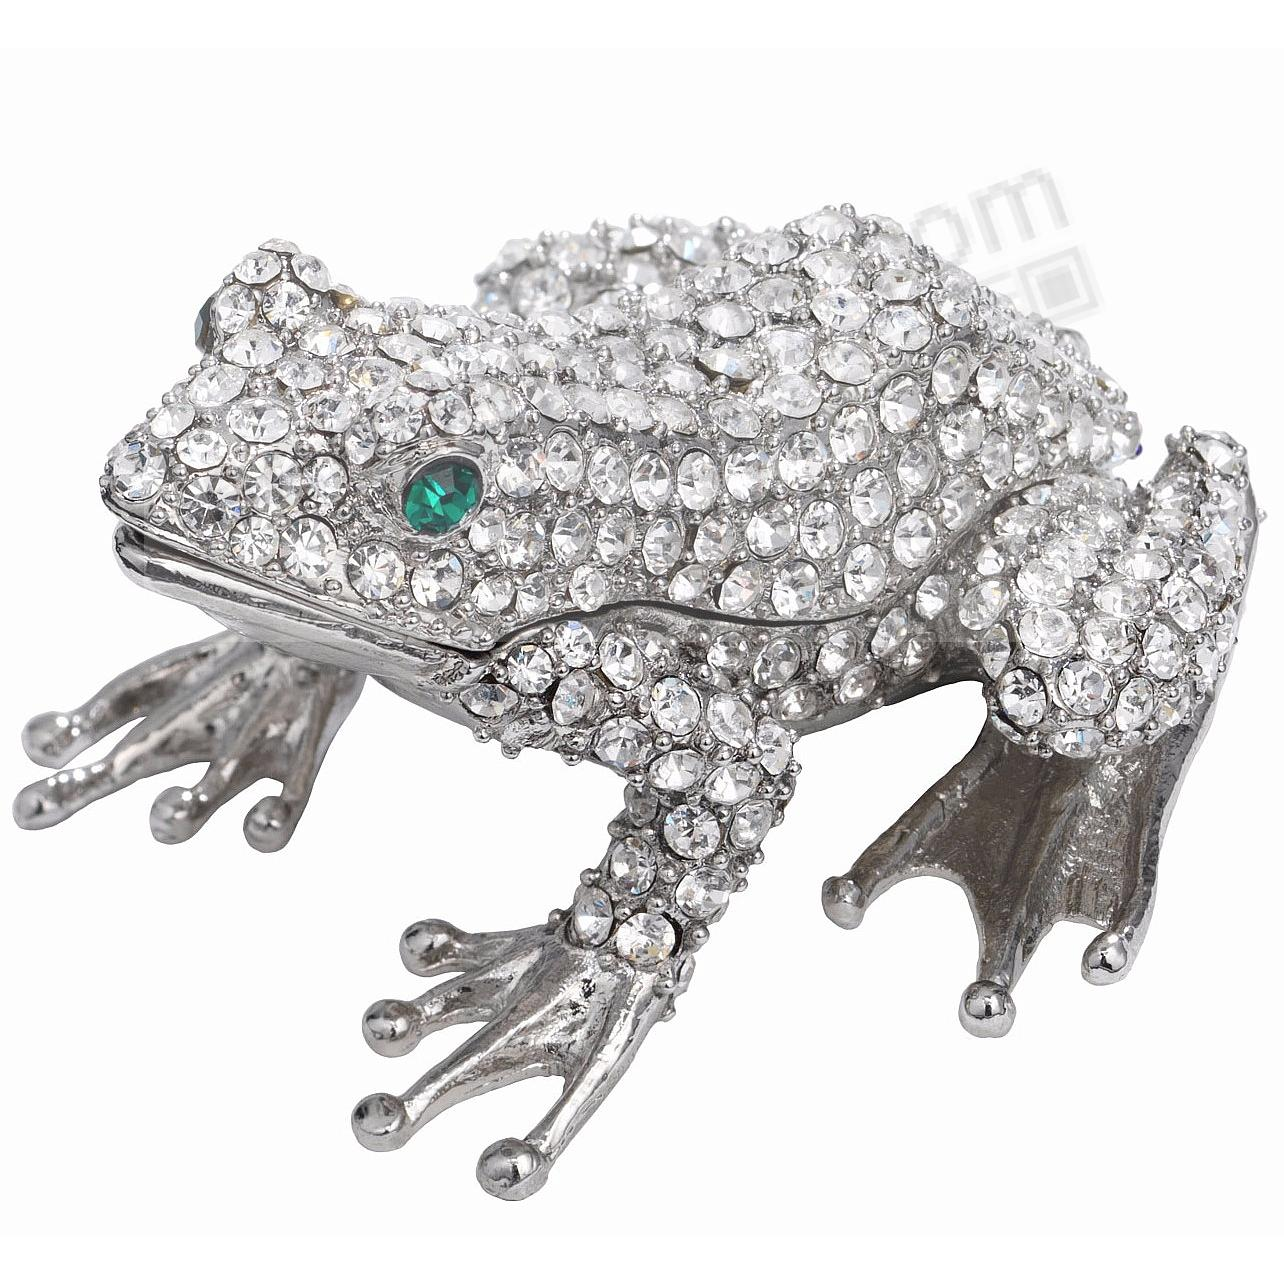 Crystal pav frog box by olivia riegel picture frames photo crystal pav frog box by olivia riegel jeuxipadfo Images